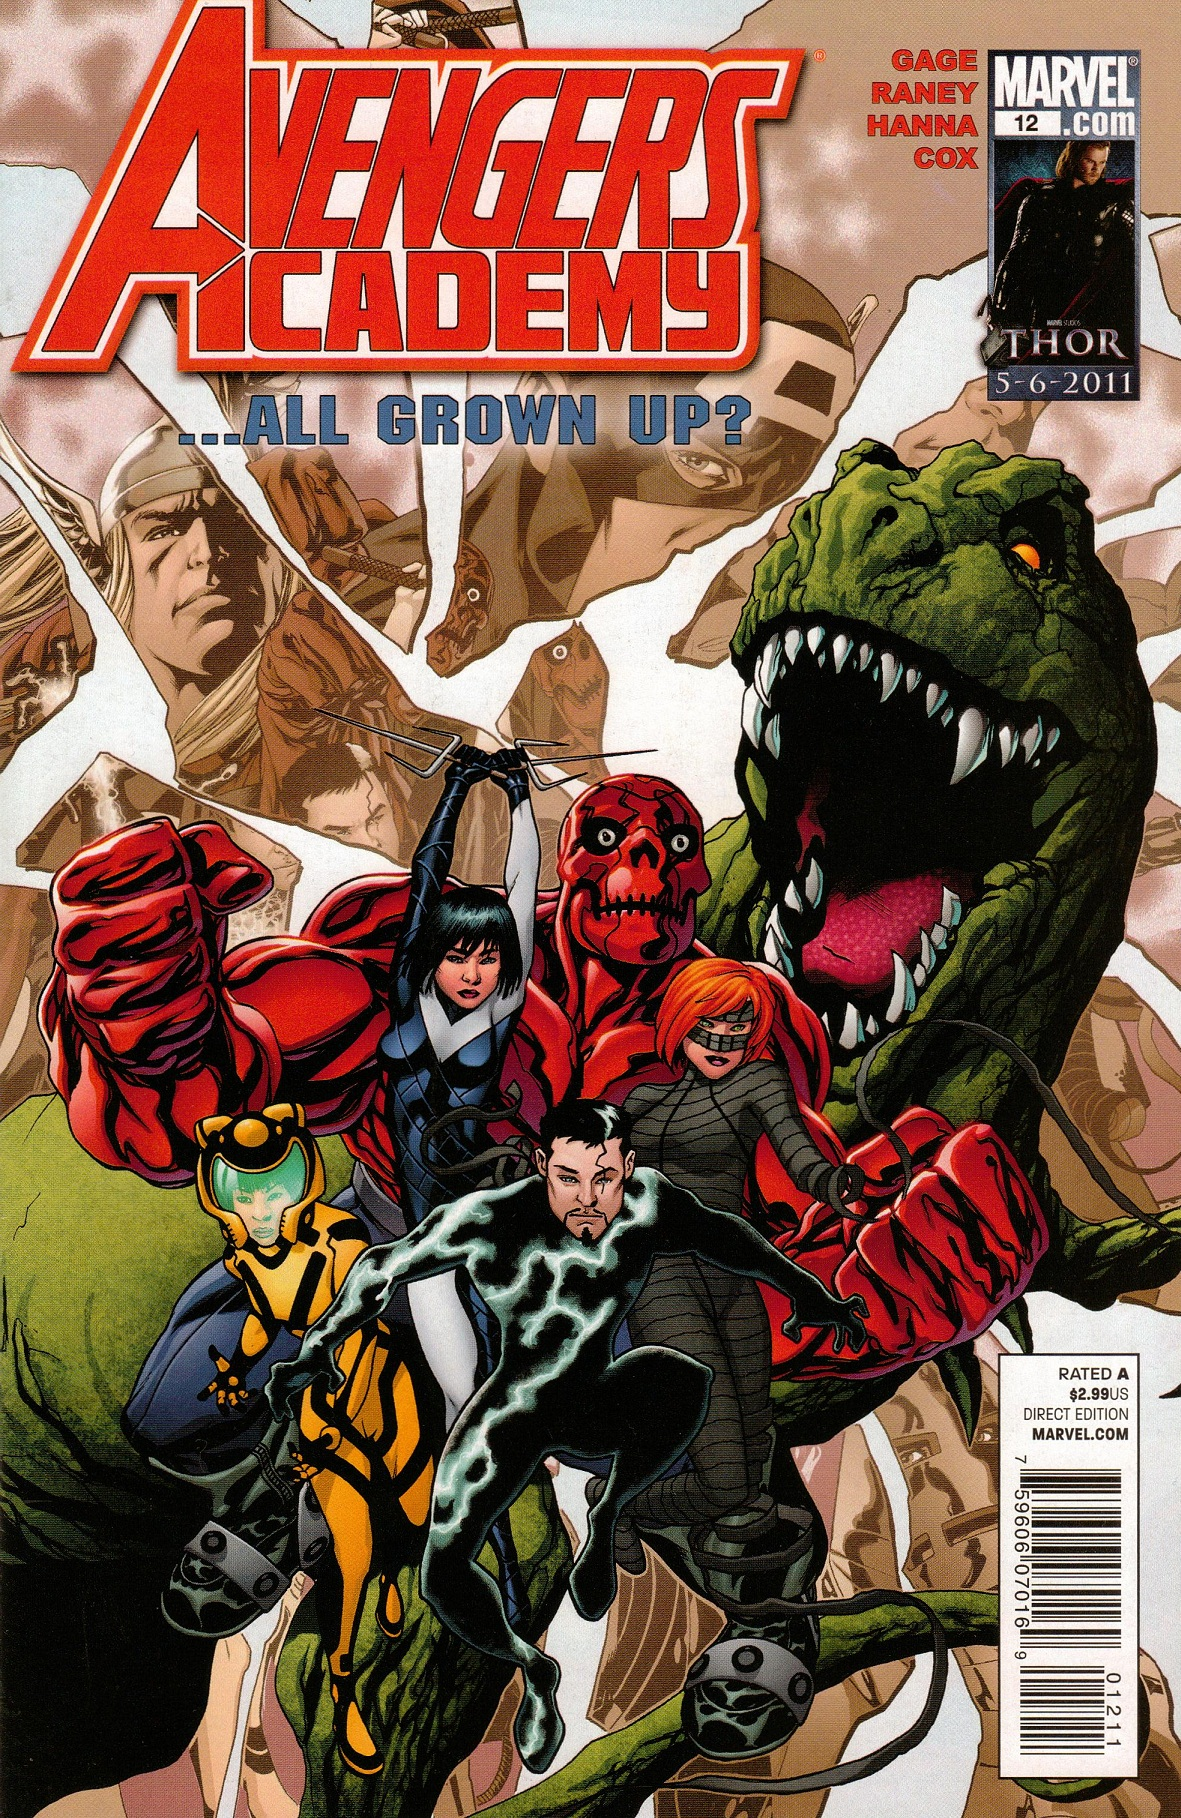 http://img3.wikia.nocookie.net/__cb20110421012726/marveldatabase/images/a/a6/Avengers_Academy_Vol_1_12.jpg